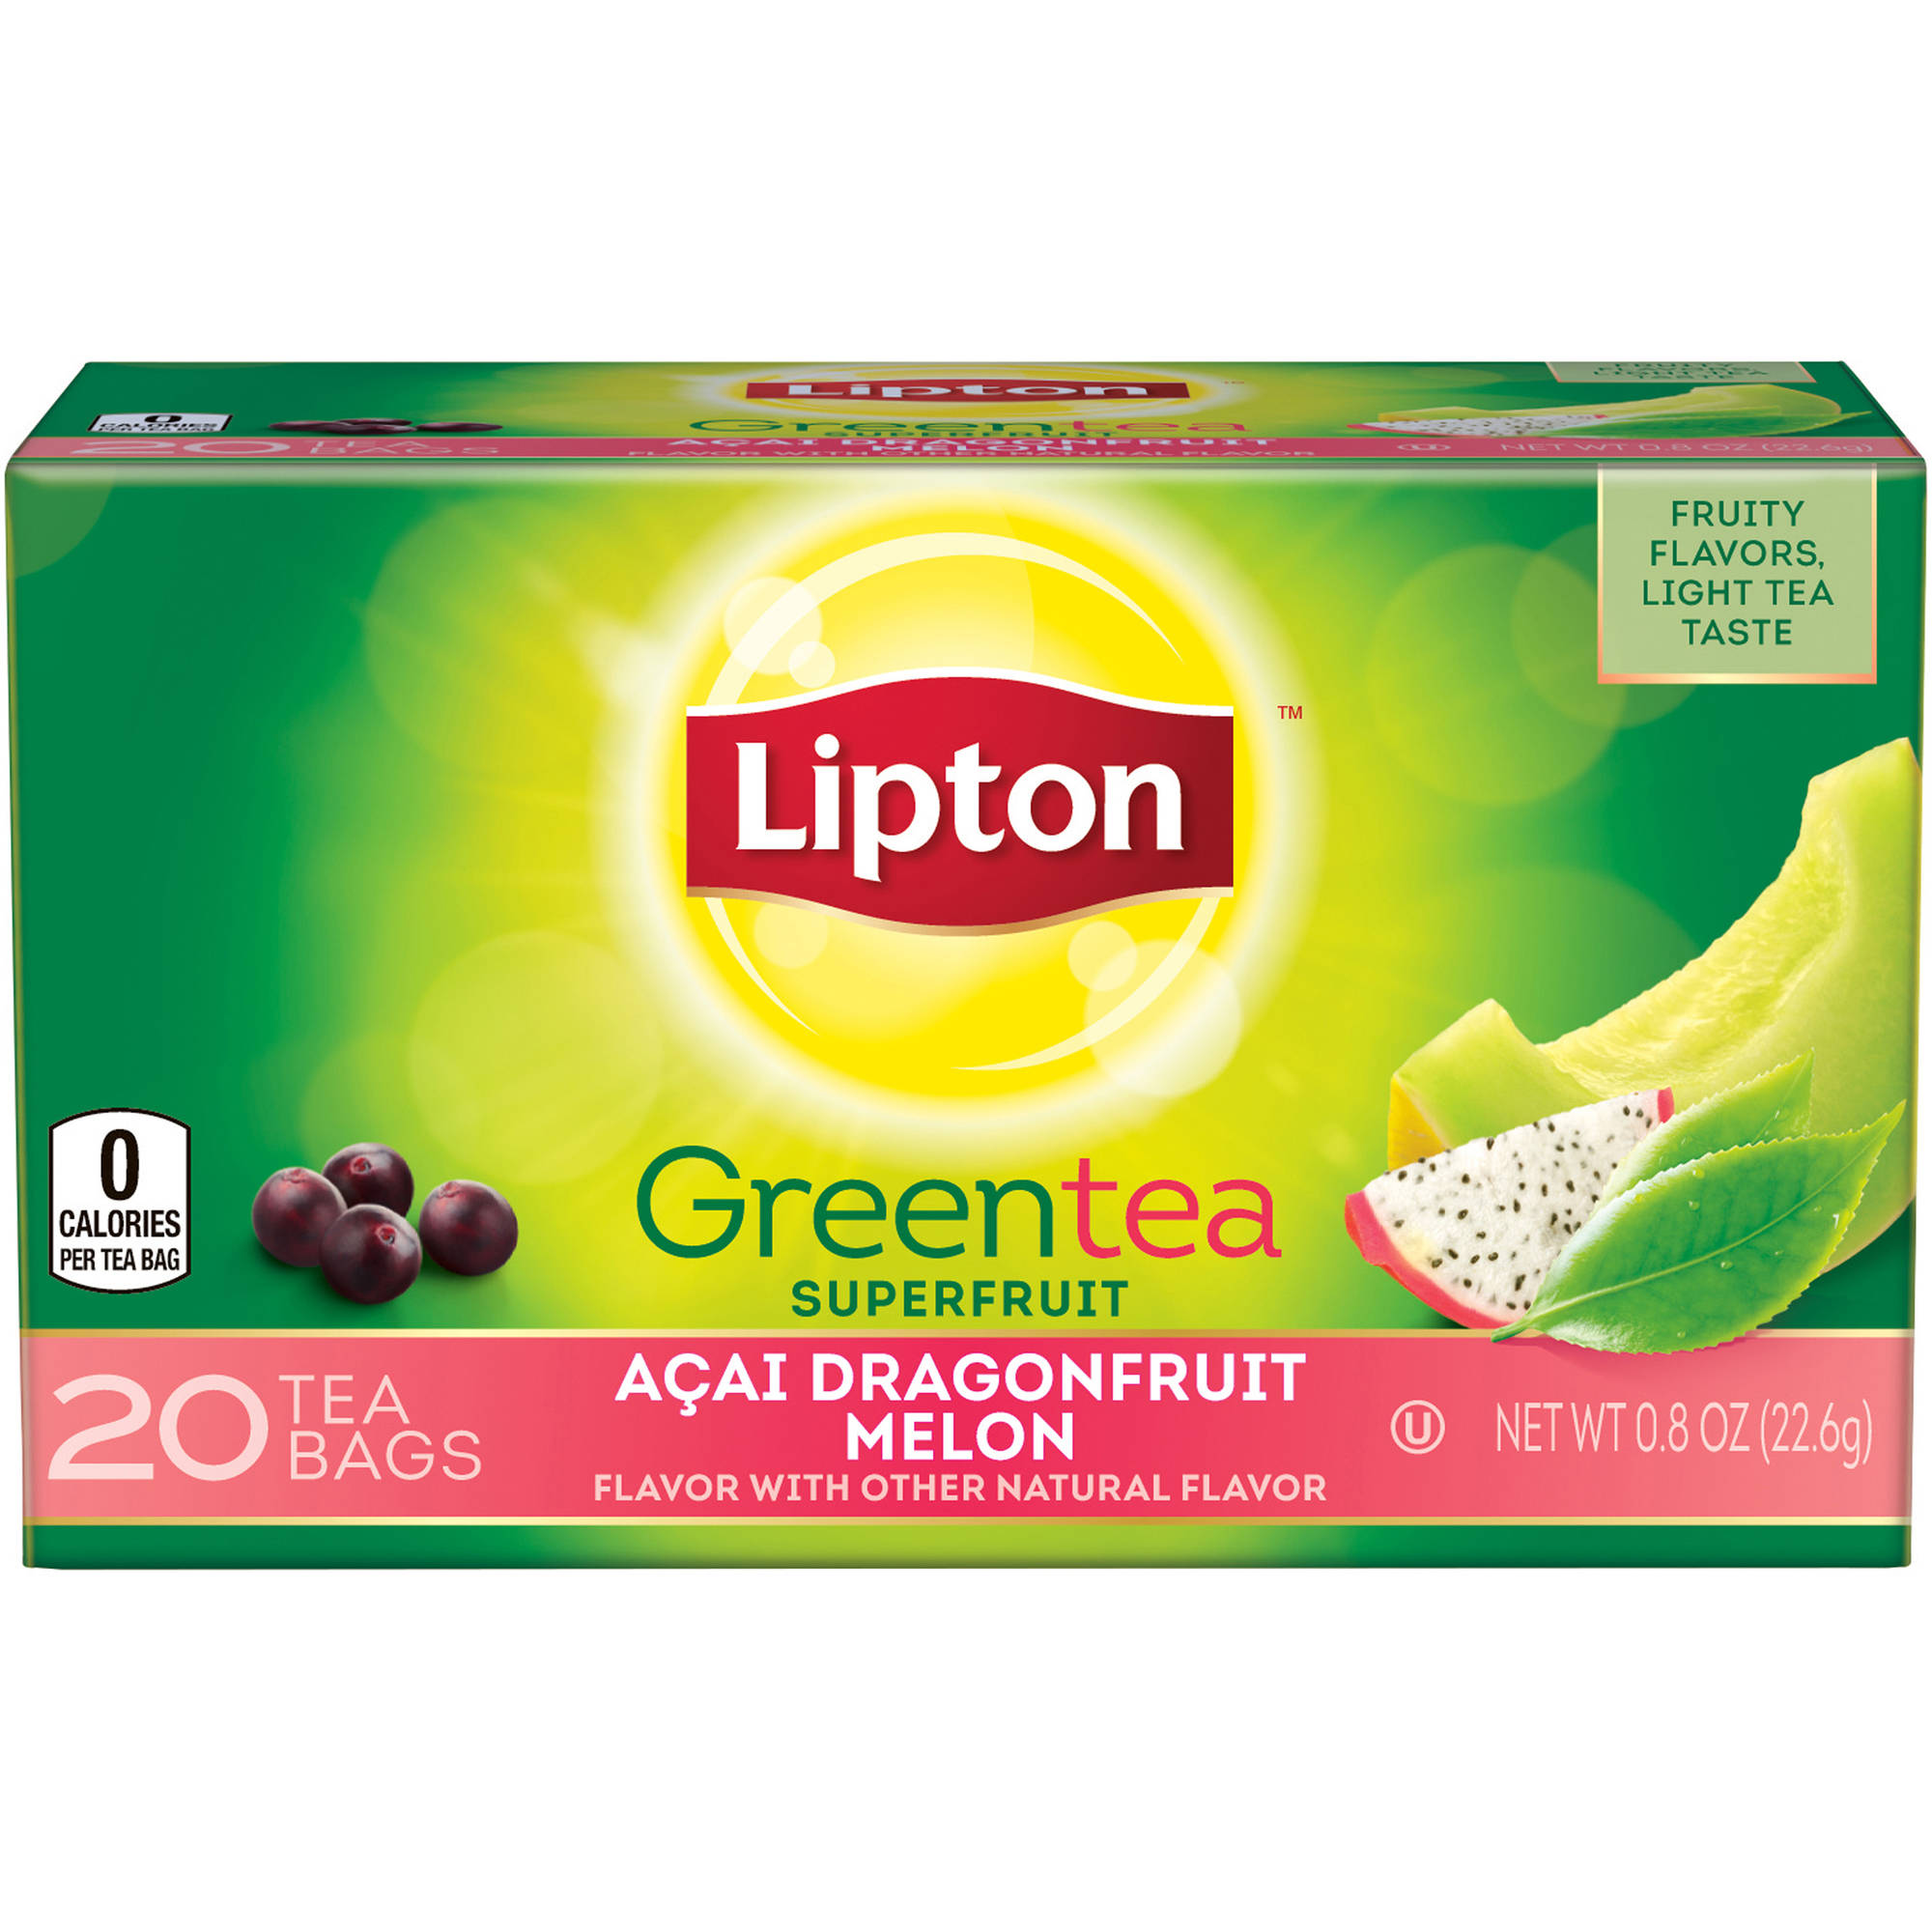 Lipton Dragonfruit Melon Green Tea Bags, 20 ct